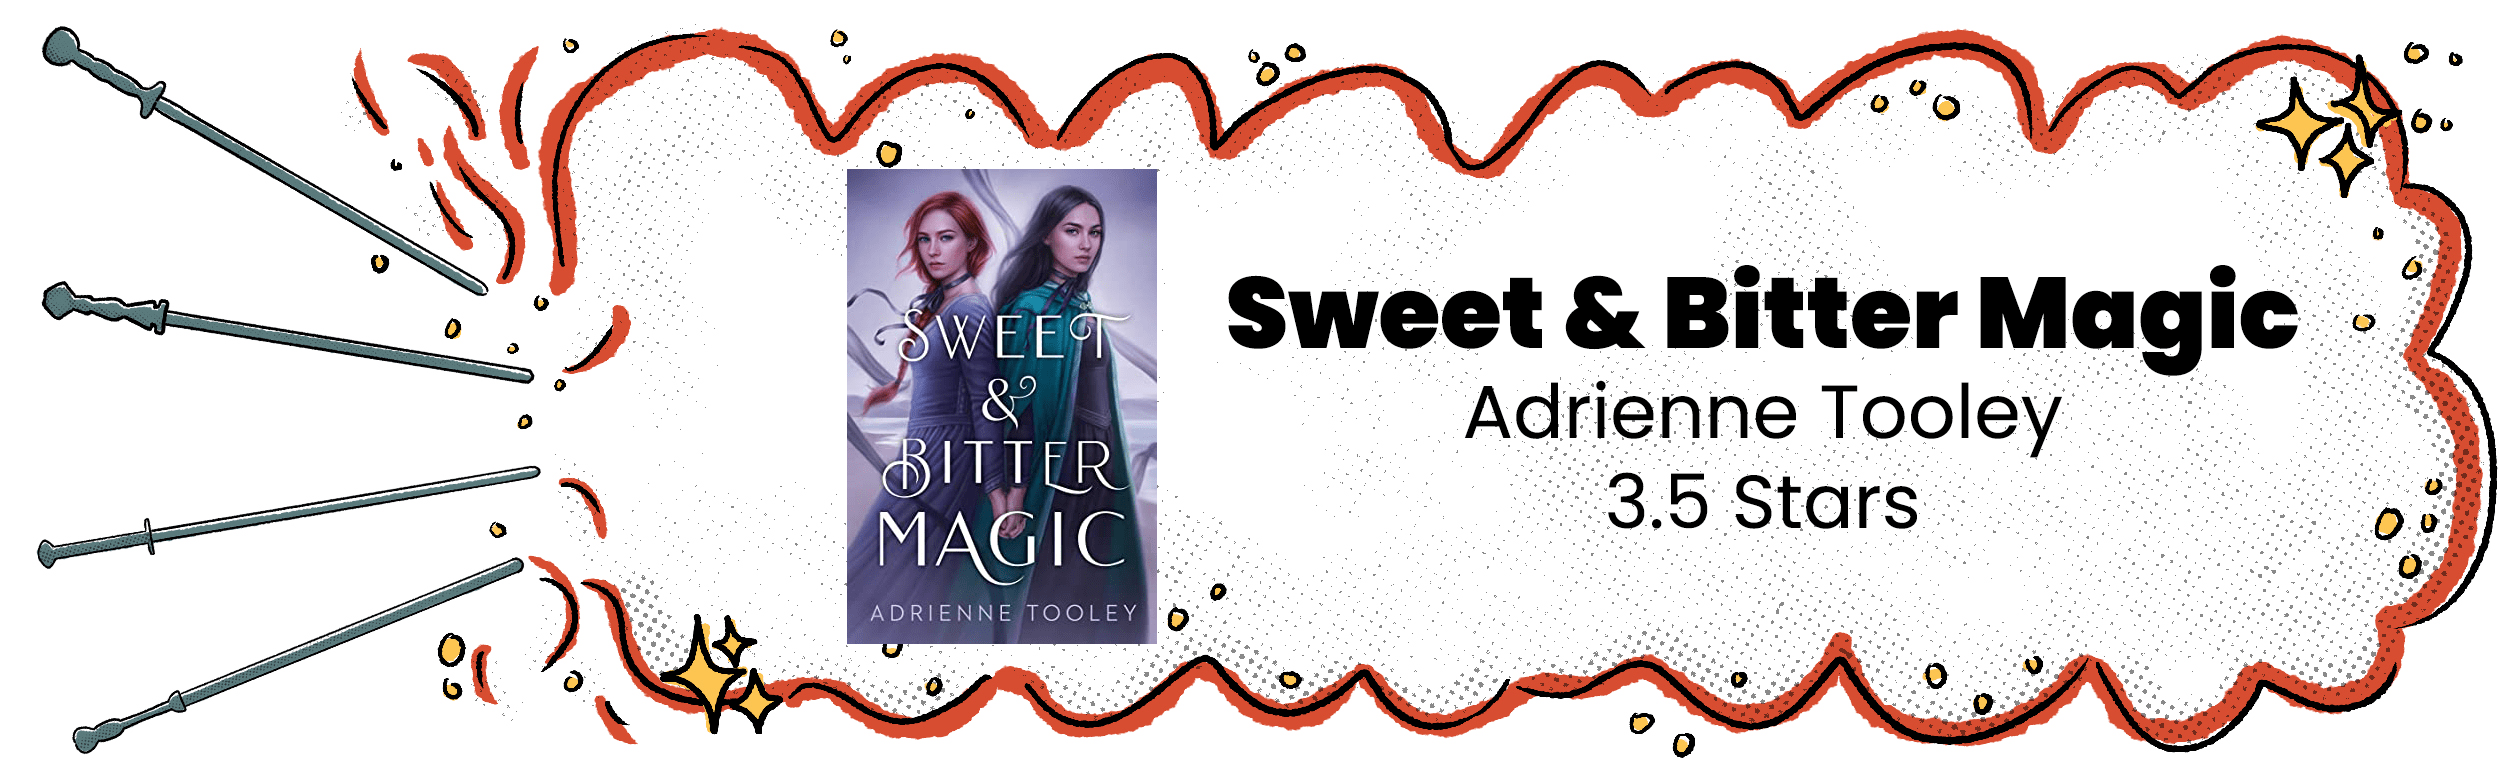 Sweet & Bitter Magic Review Banner with 3.5 Star Rating